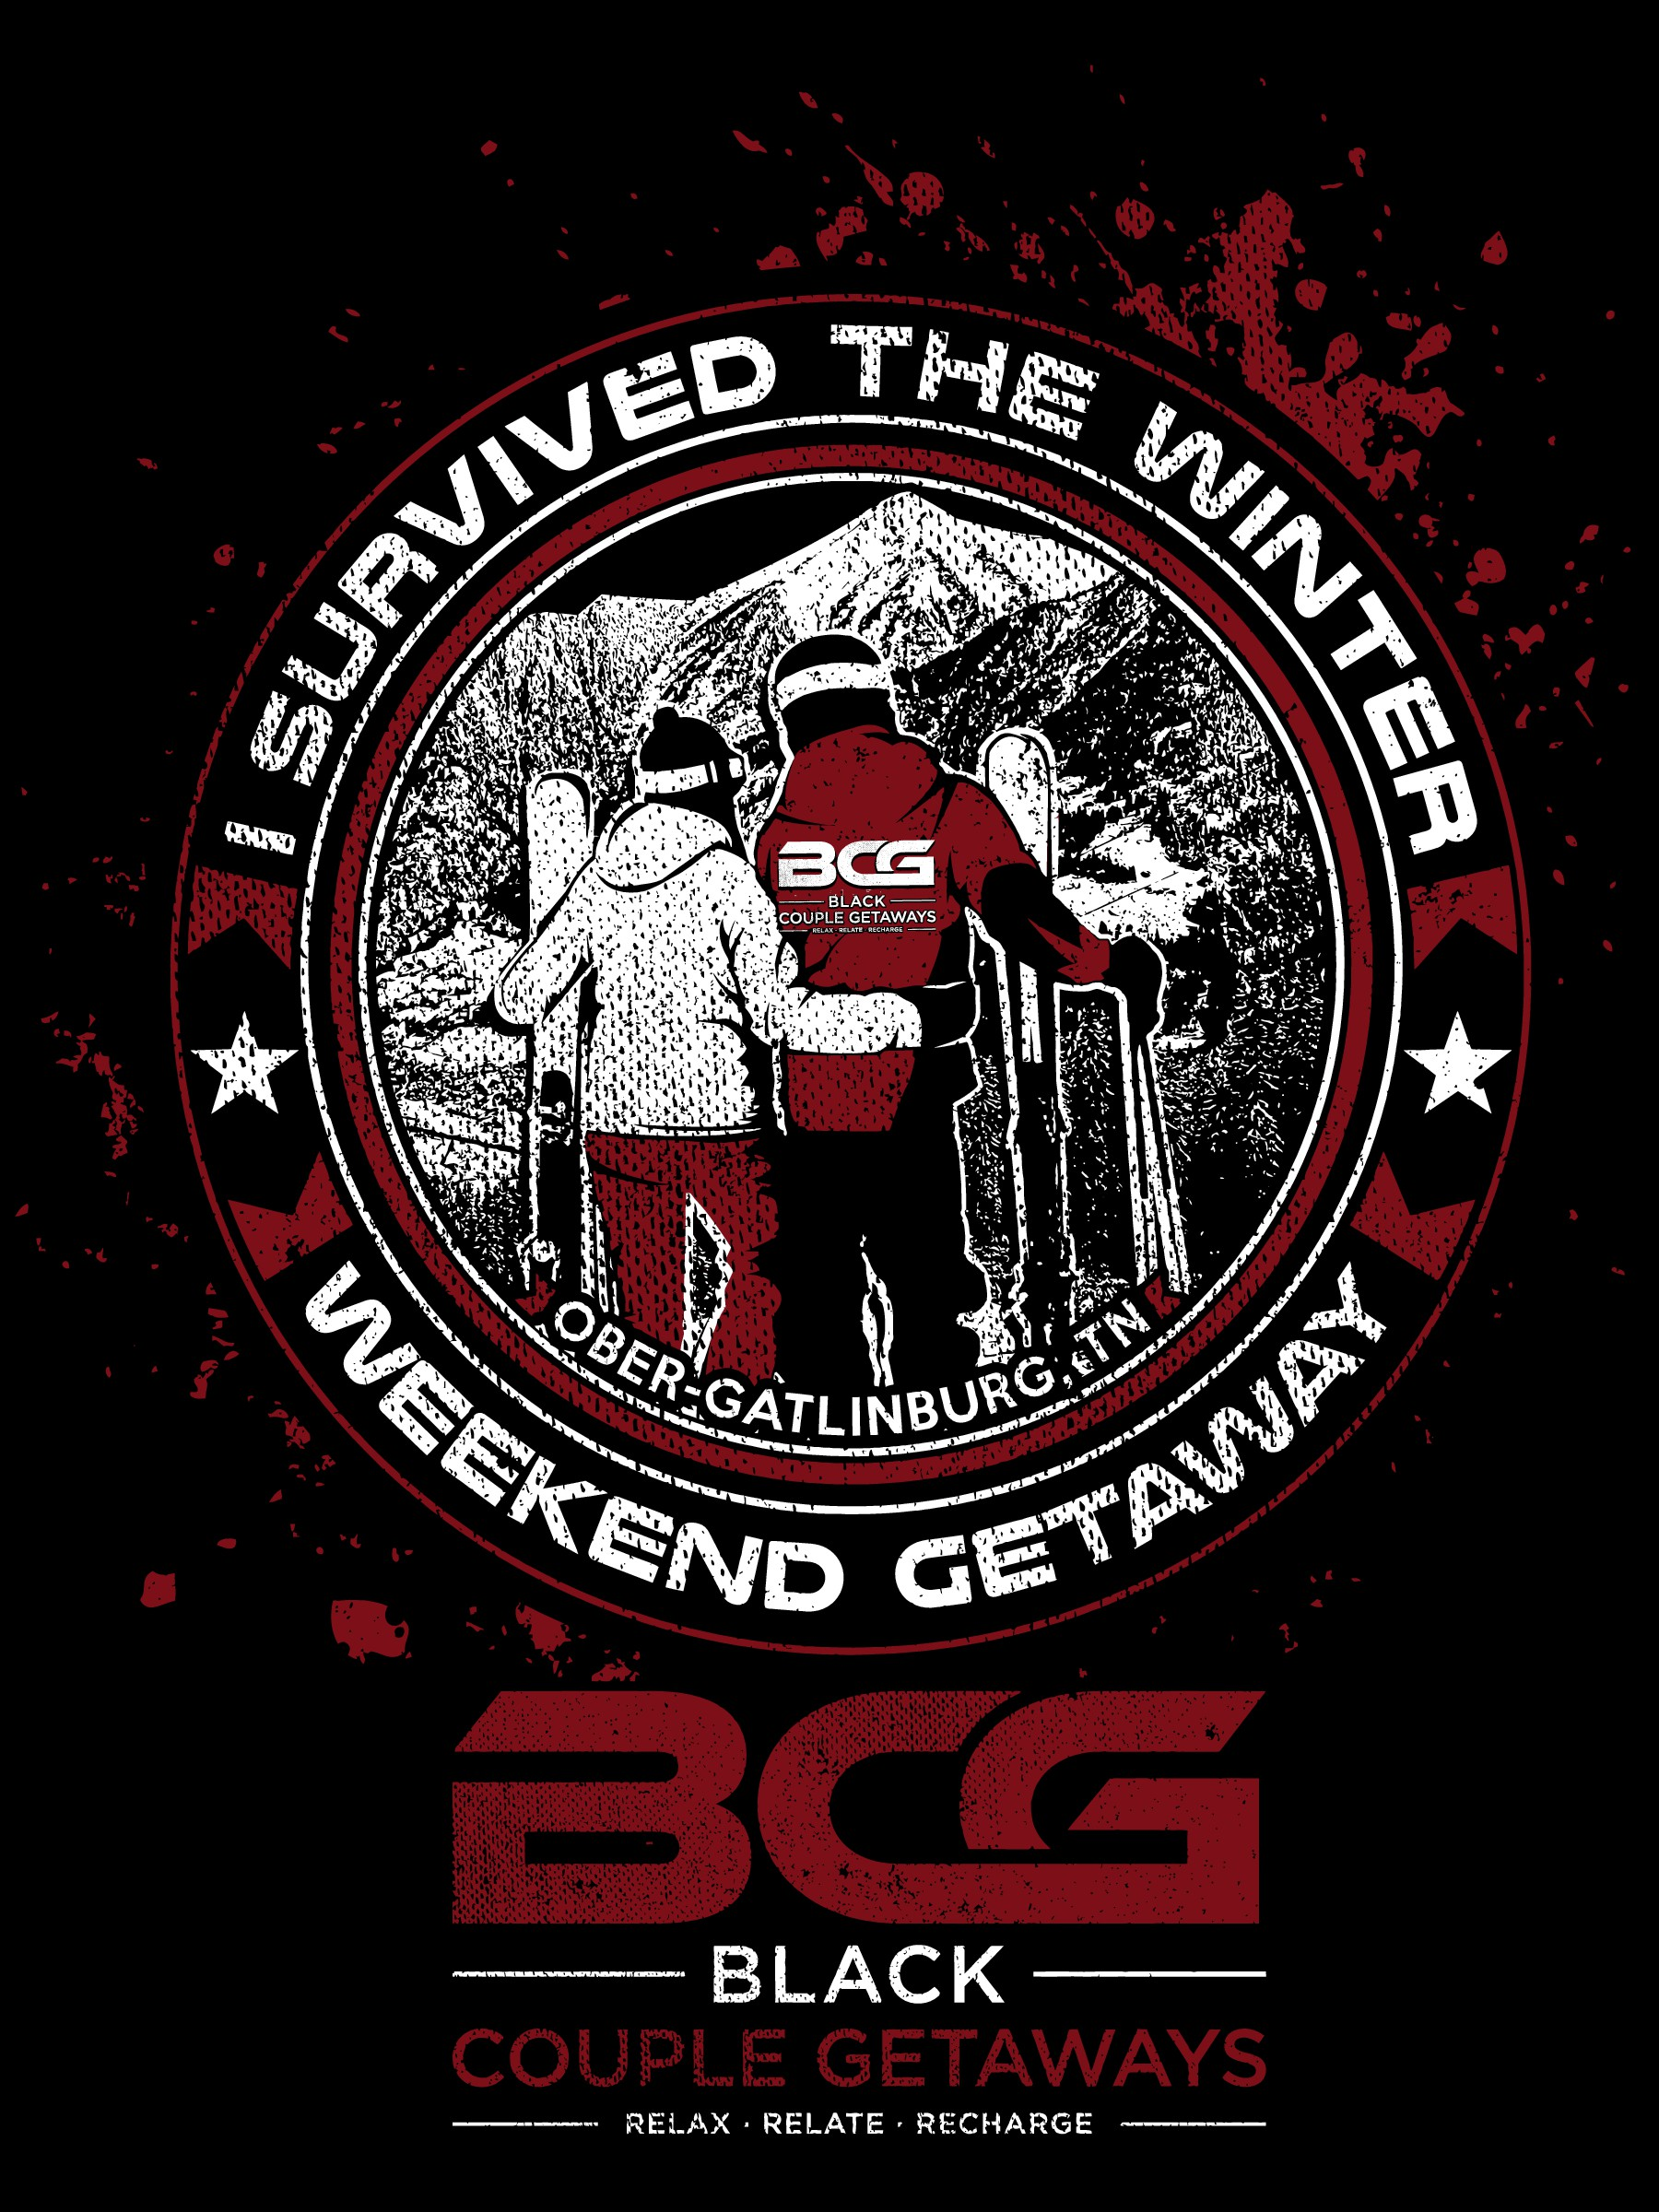 Winter Weekend Getaway T-Shirt Contest